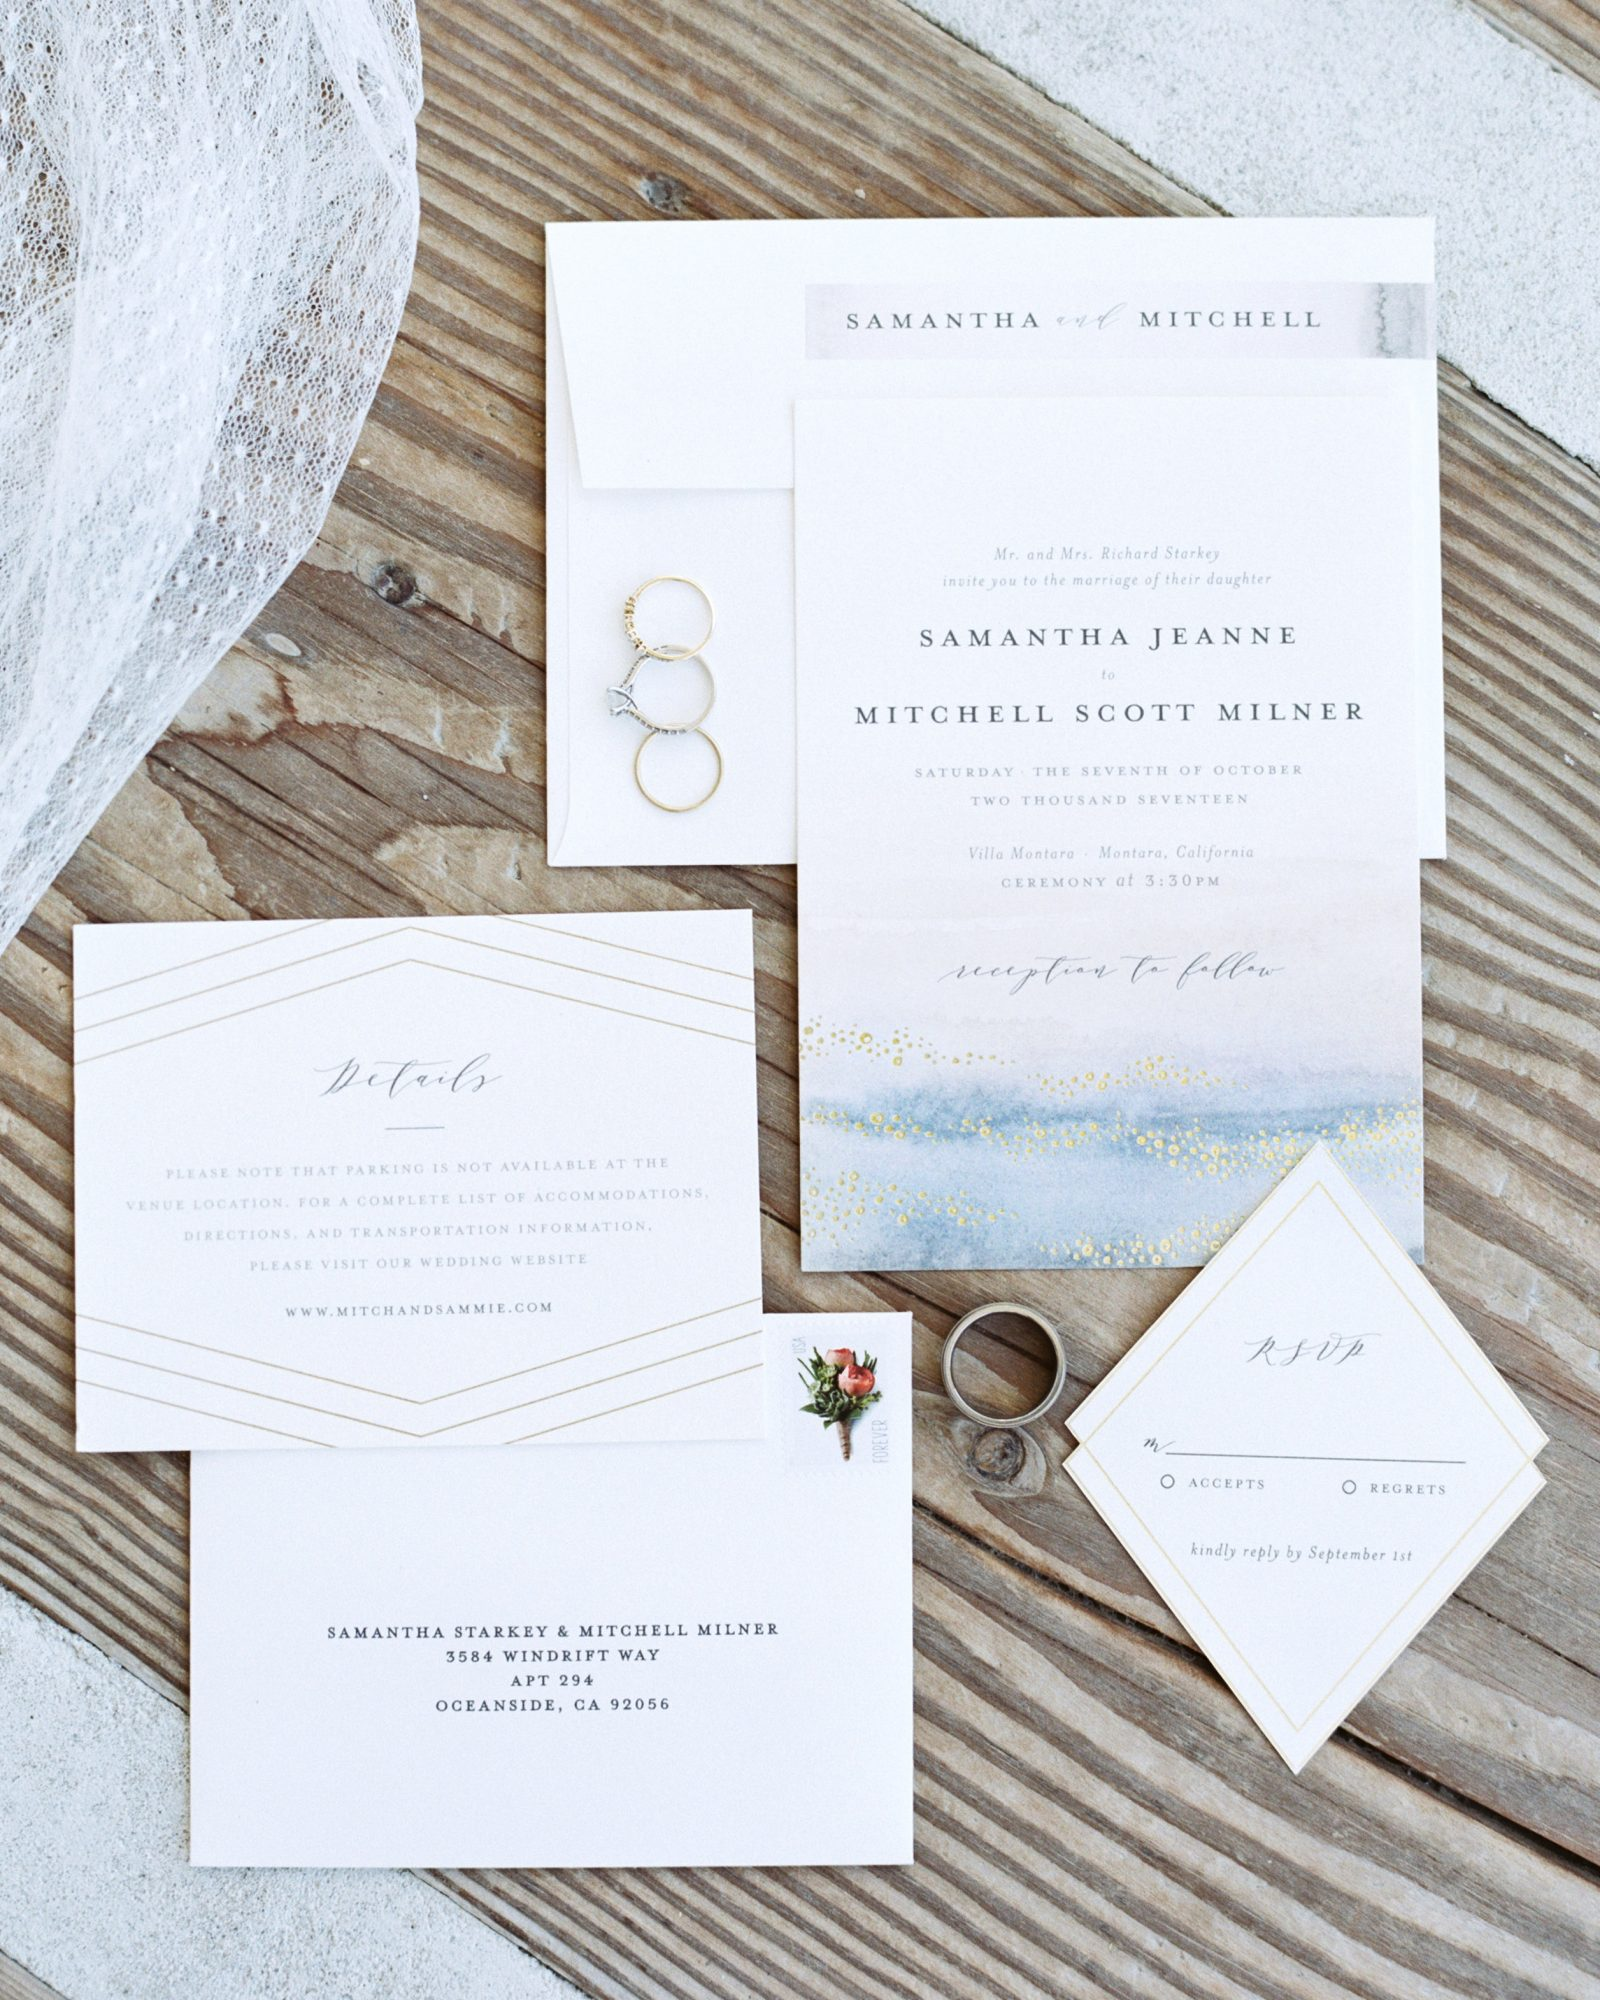 Faint pops of blue and gold—which looked like the sun sparkling off the sea—gave this California wedding's Minted invitations a beachy vibe.